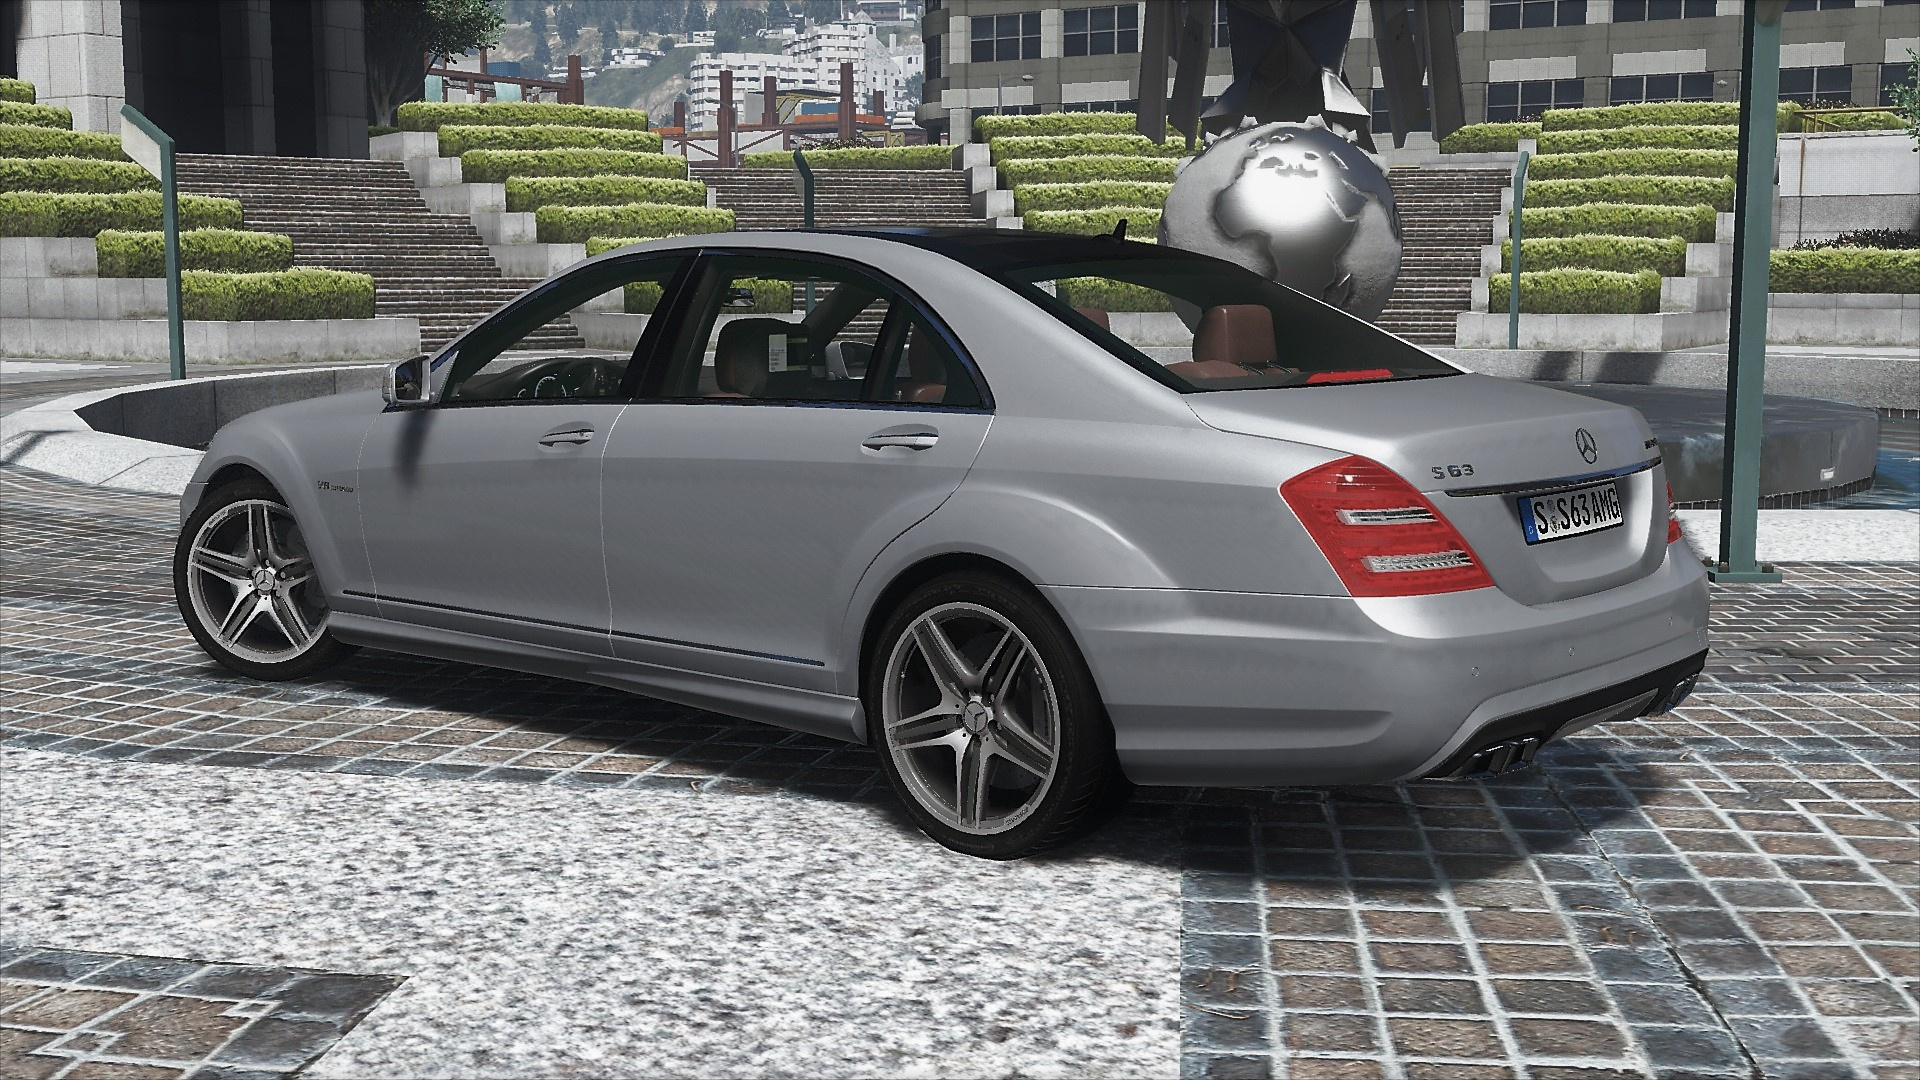 2012 mercedes benz s63 amg w221 add on tuning gta5 for 2012 mercedes benz s63 amg